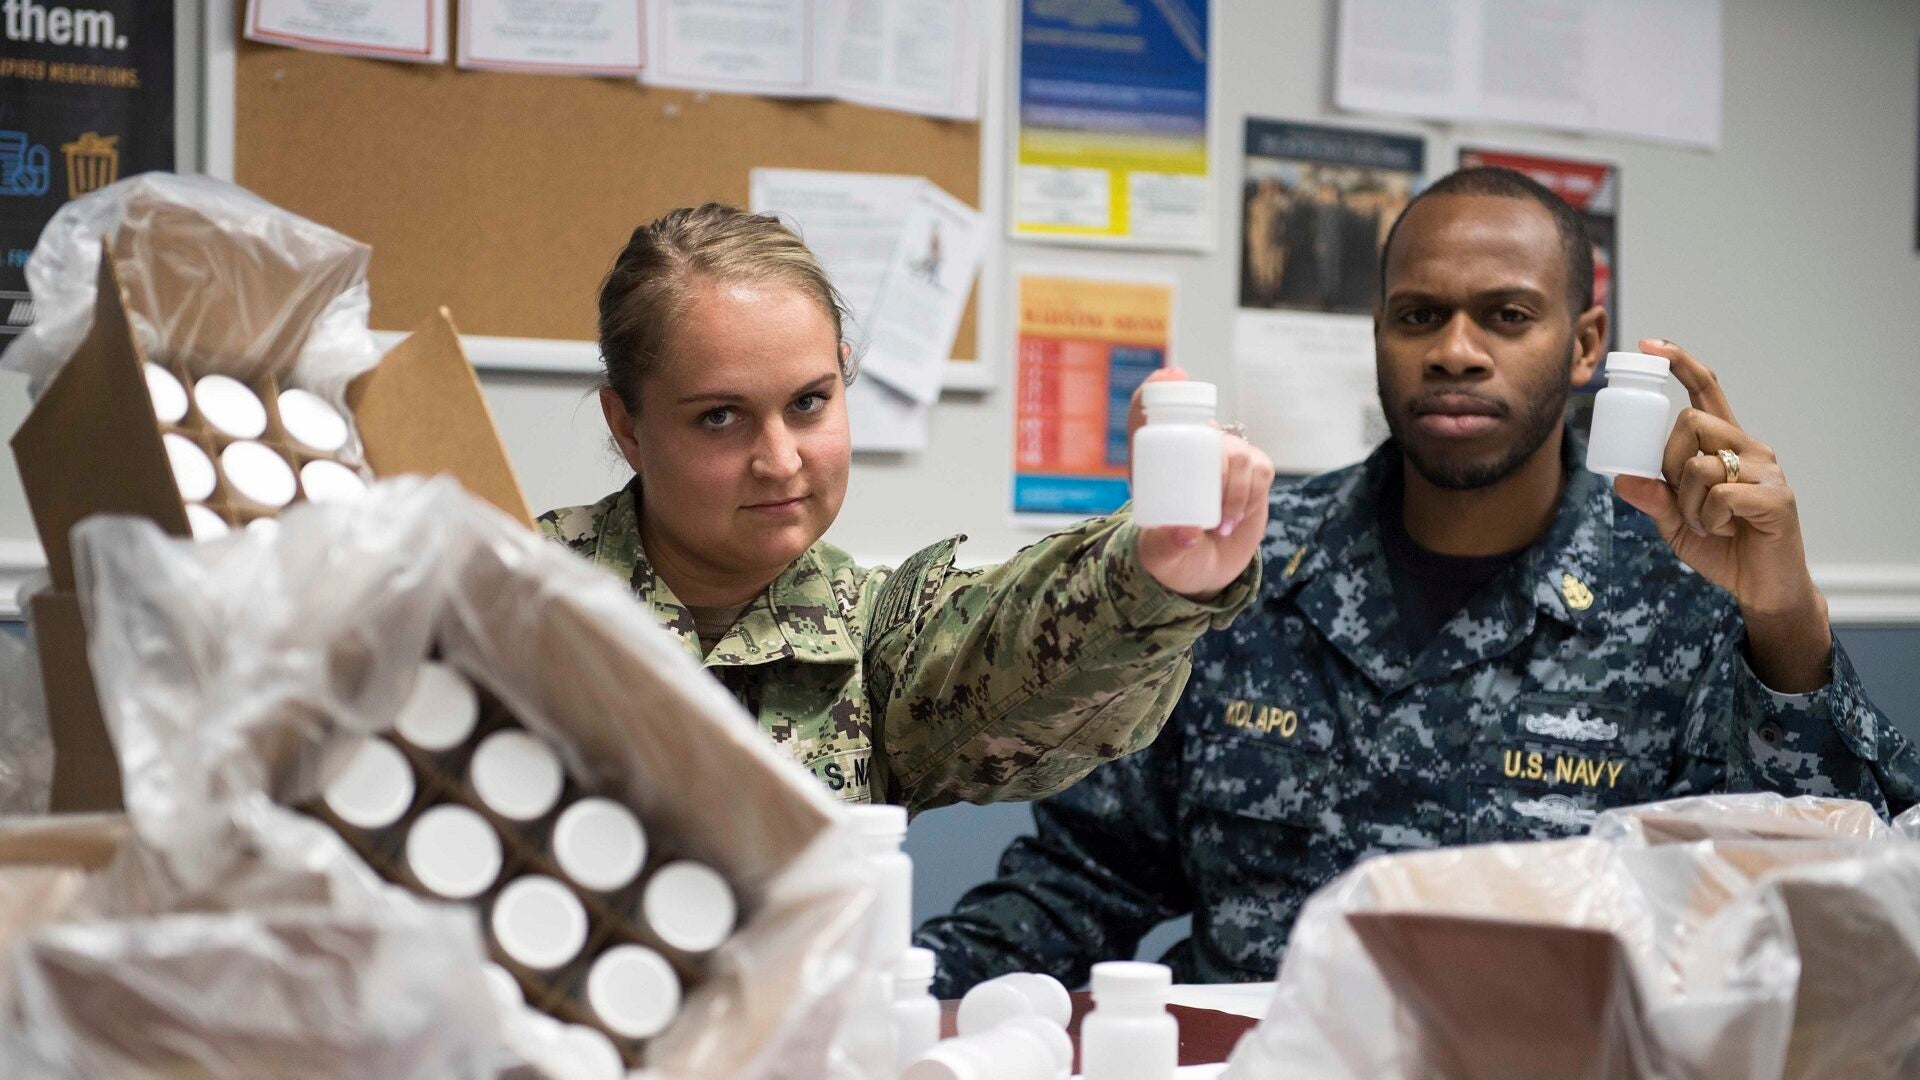 The Navy is missing your pissing: Sailors are now back to regular drug testing